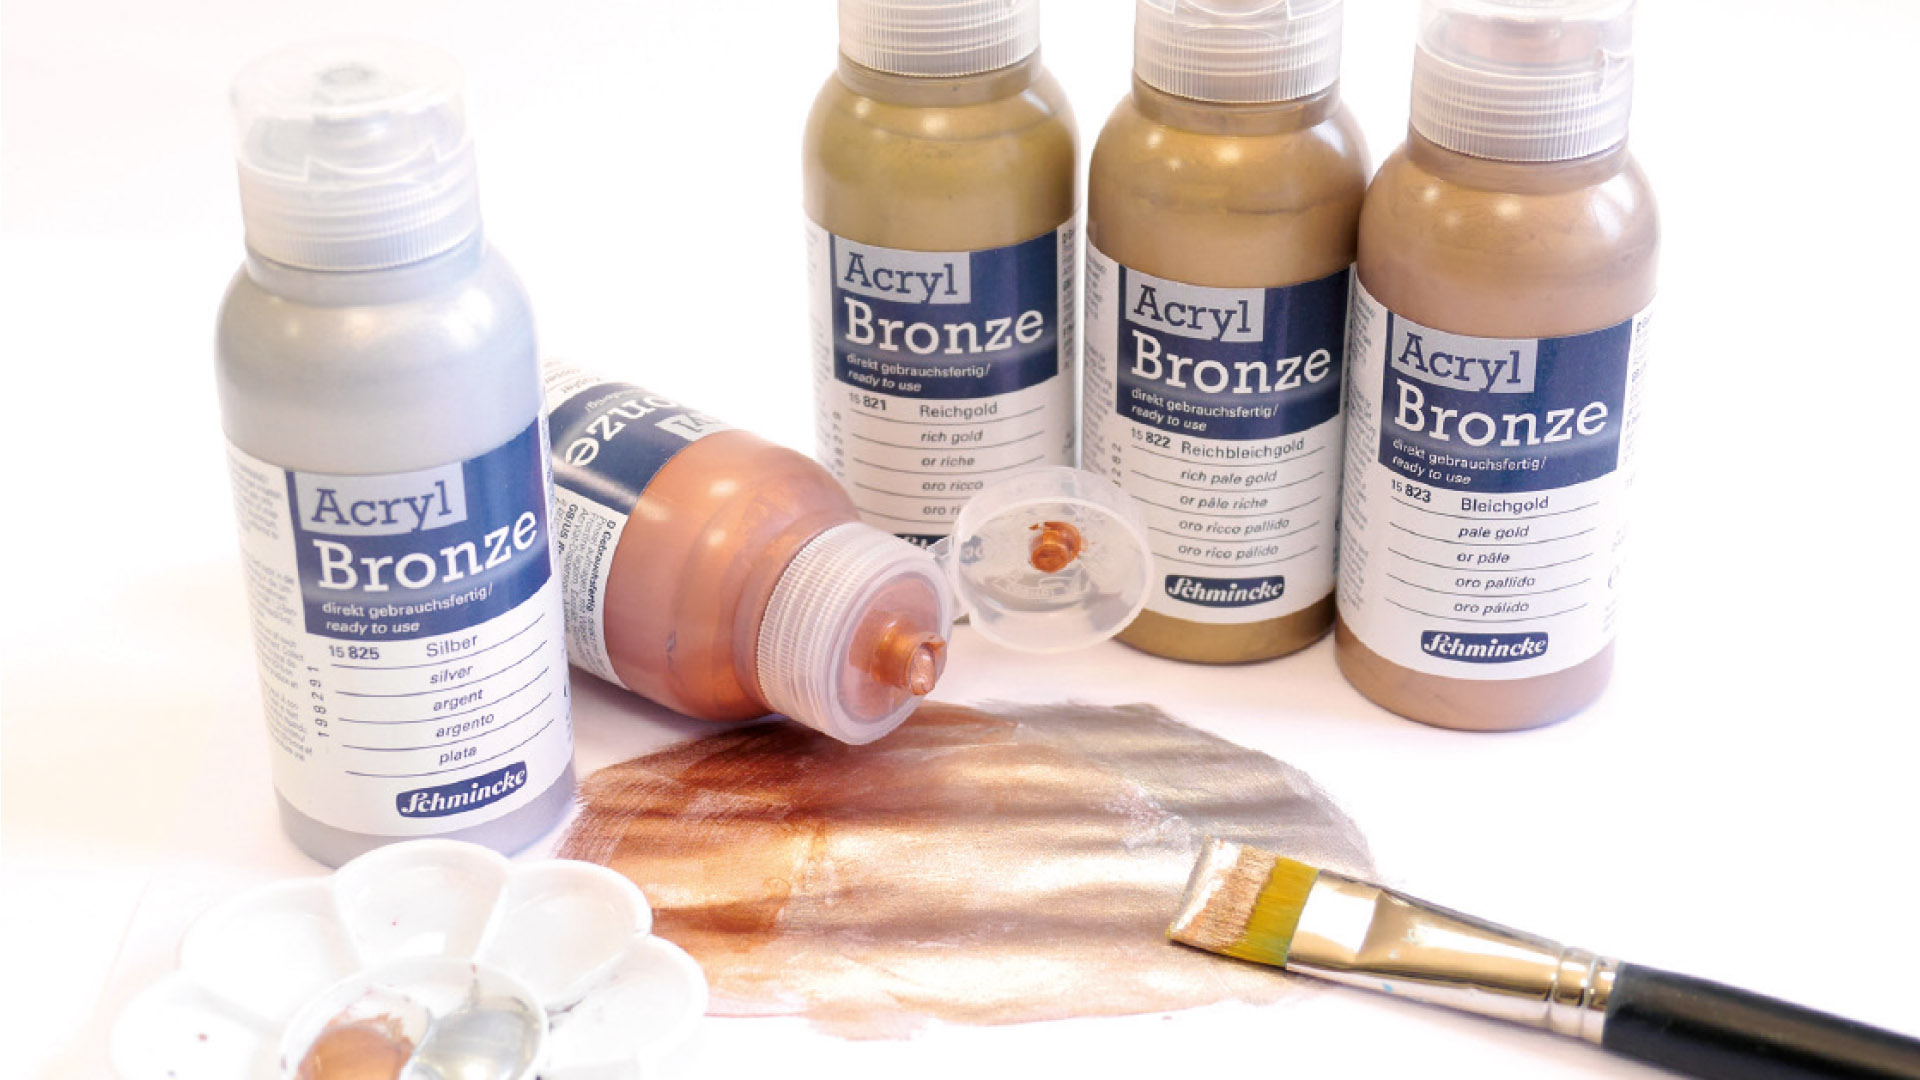 Schmincke Bronzing Paints: For Refining Motifs